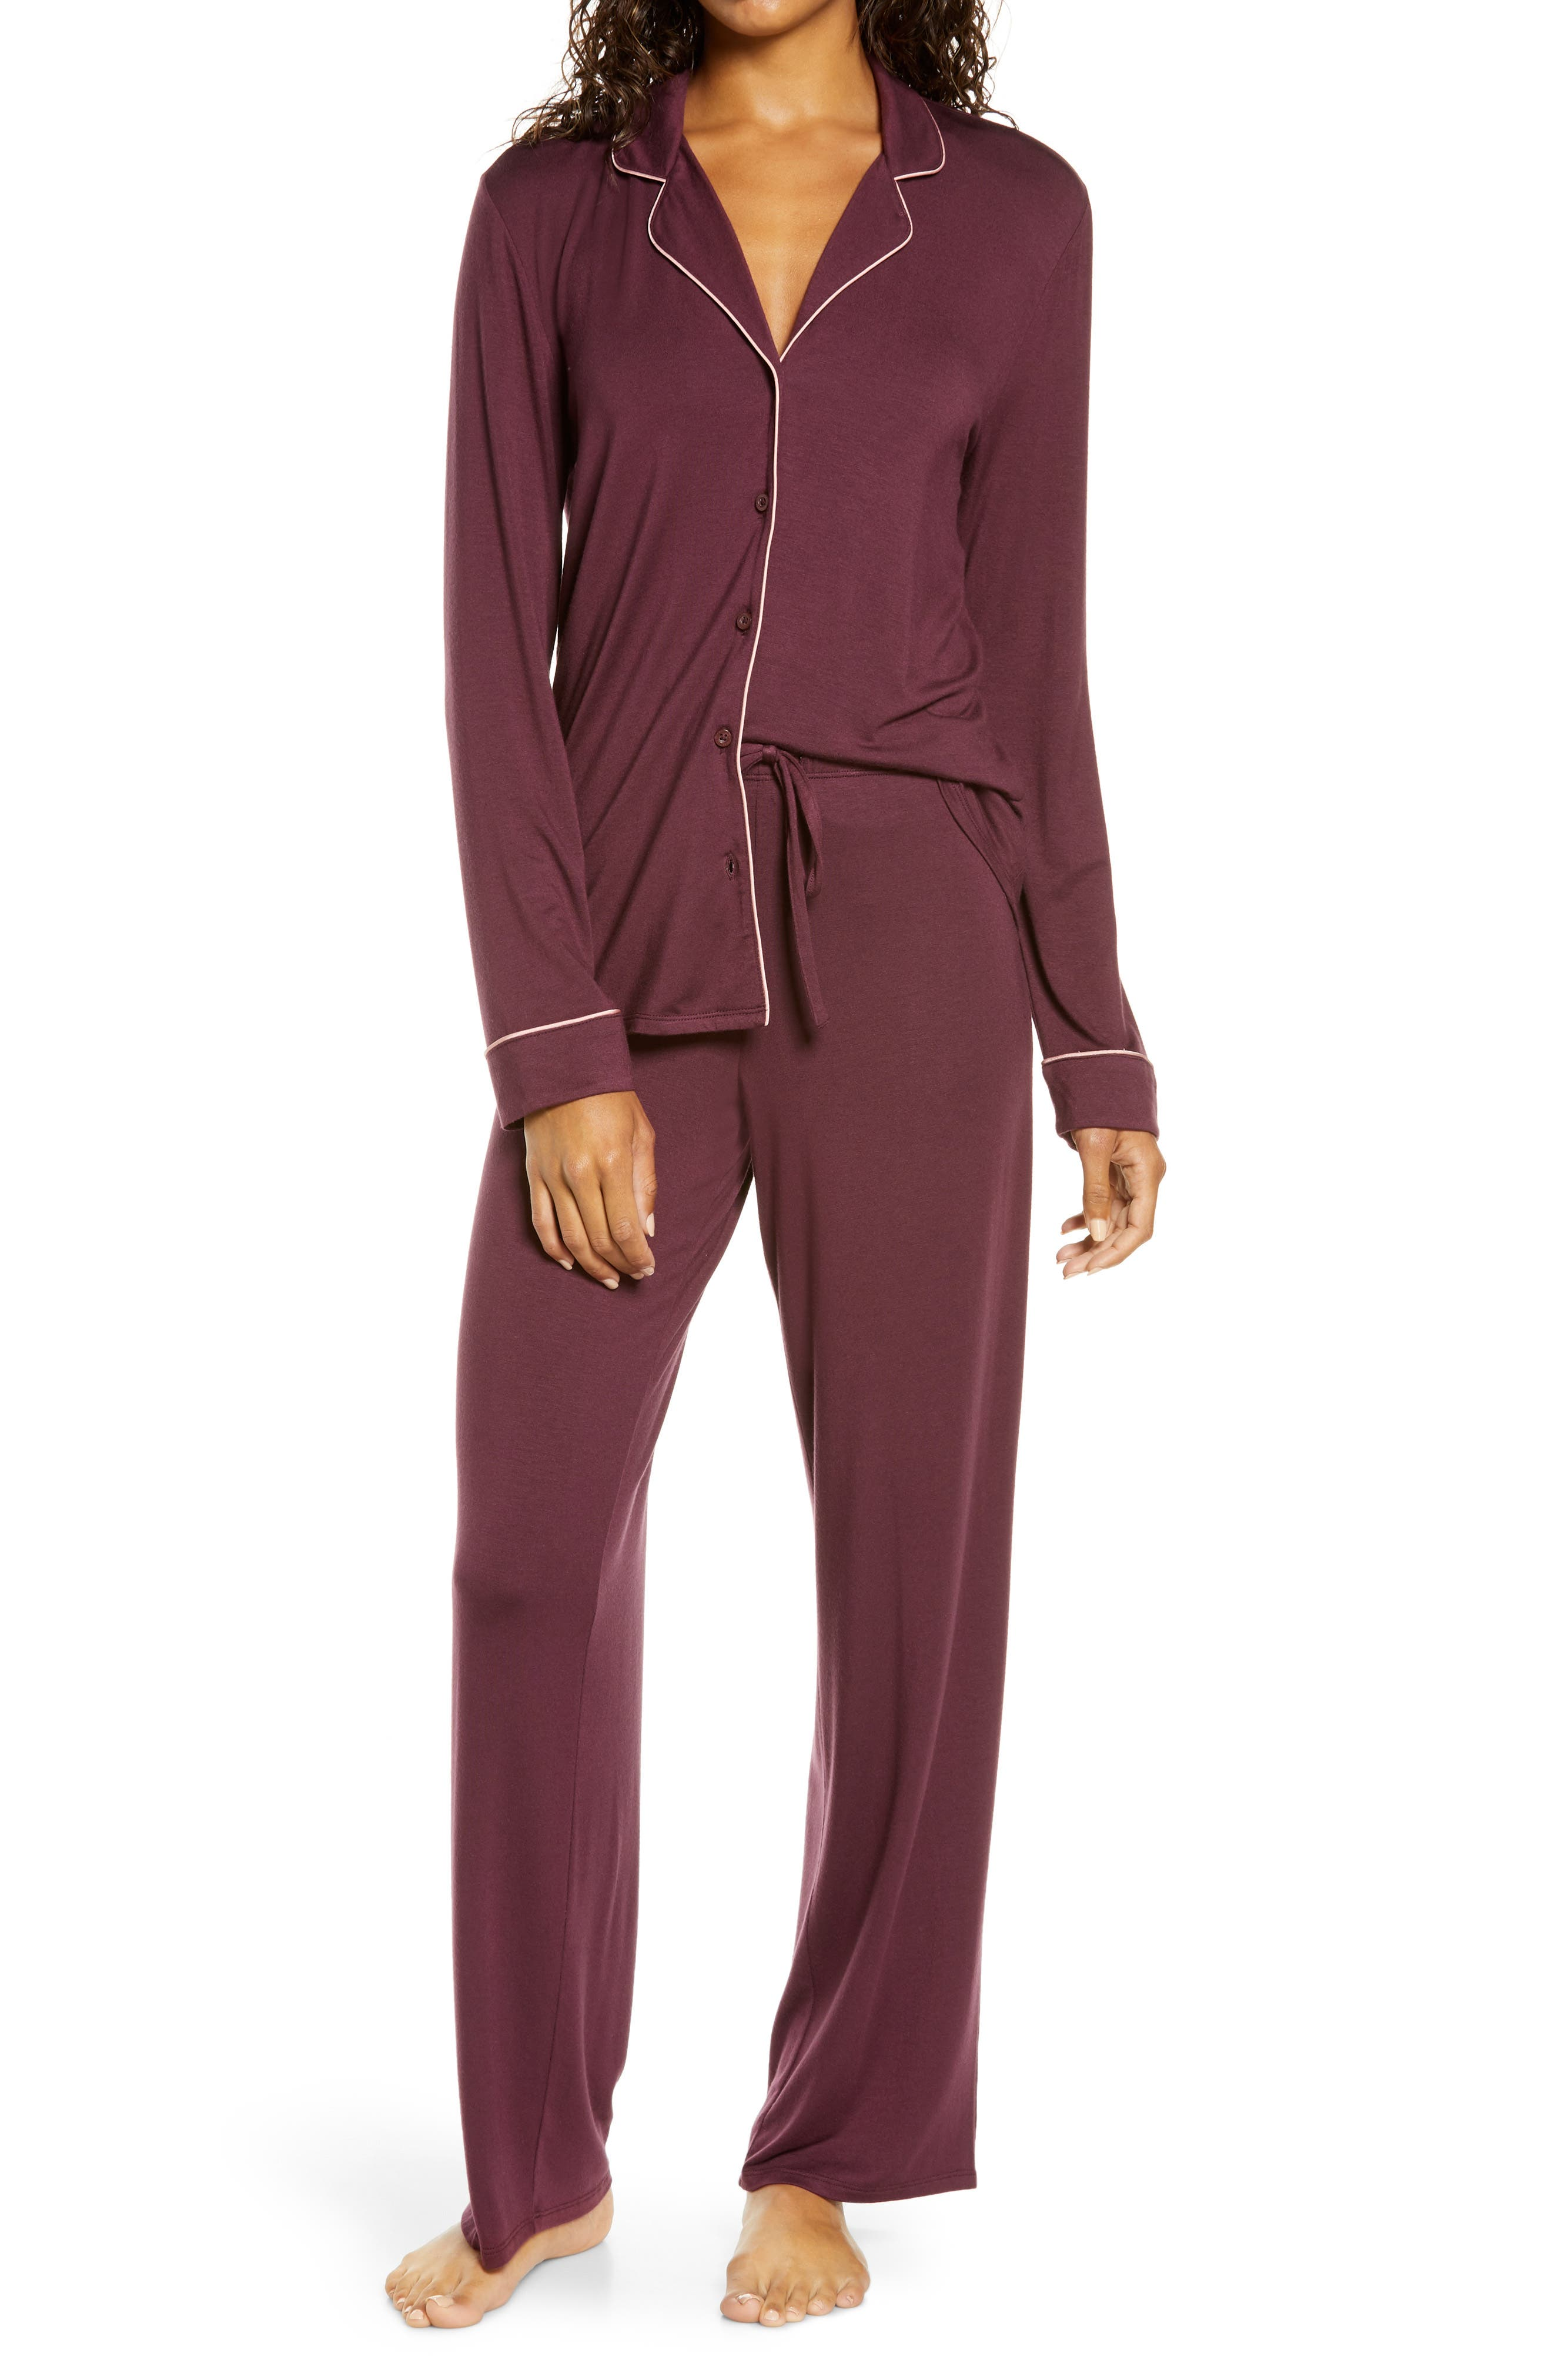 Stretchy and soft, these comfy PJs that pair a menswear-inspired top and slouchy pants are great for lounging and, of course, sleeping. Style Name: Nordstrom Moonlight Dream Pajamas. Style Number: 6000893. Available in stores.